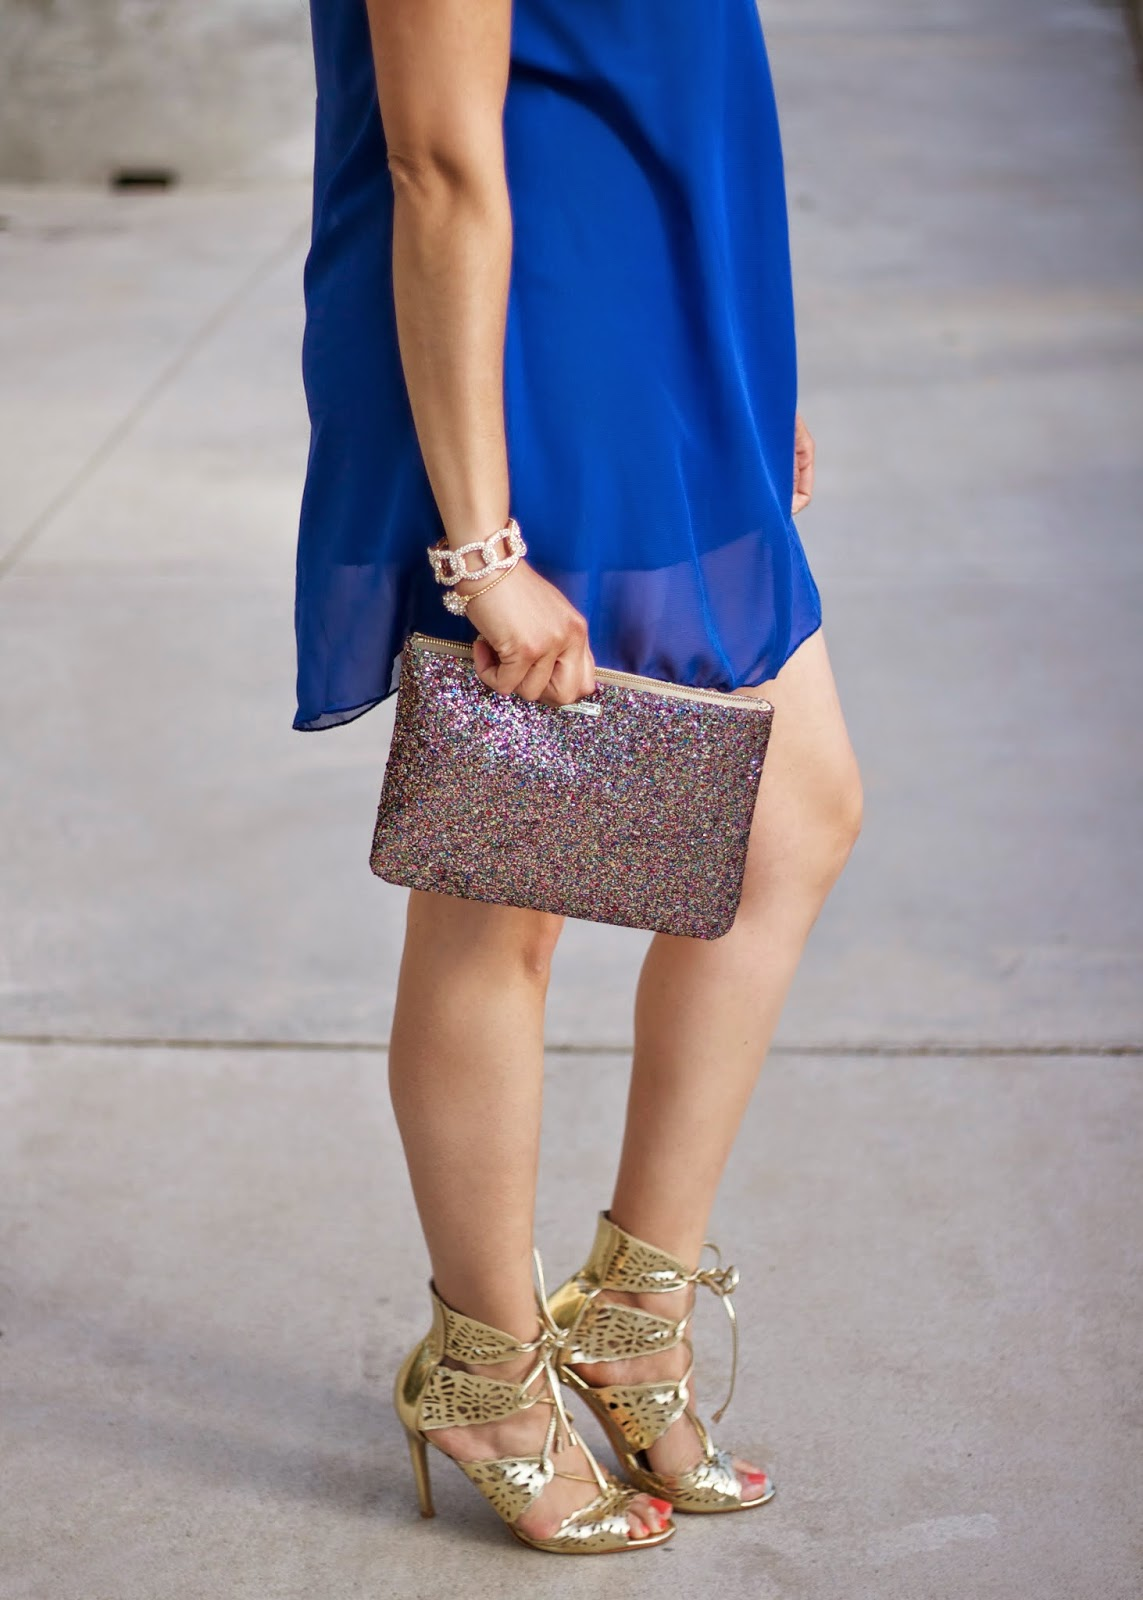 Kate spade glitter clutch, gold strappy heels from Shoe Dazzle, Shoe Dazzle blogger, Kate Spade blogger, Kate spade clutch